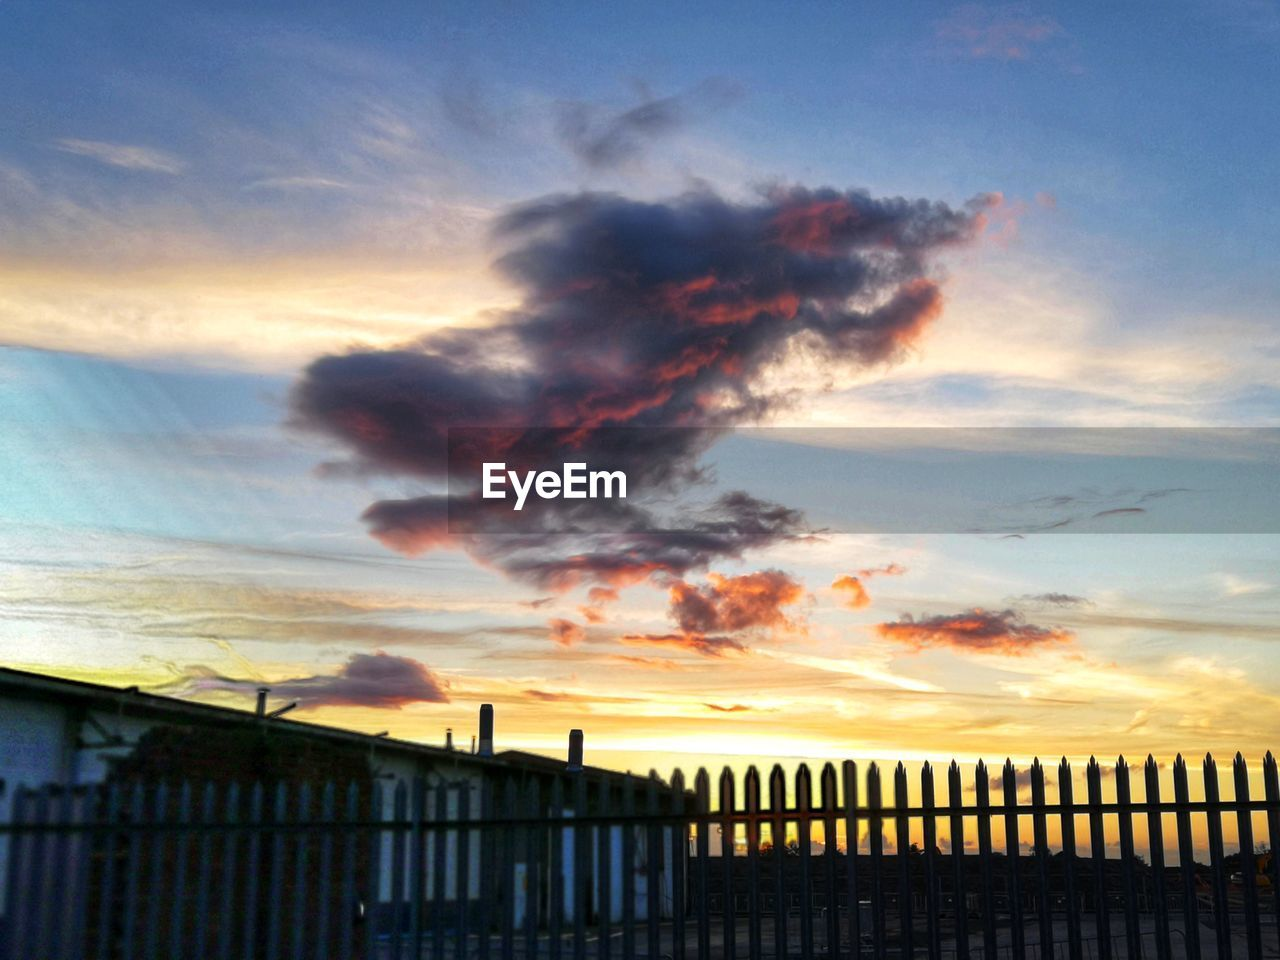 cloud - sky, sky, sunset, building exterior, nature, orange color, no people, architecture, built structure, fence, barrier, silhouette, boundary, beauty in nature, outdoors, scenics - nature, security, safety, protection, railing, ominous